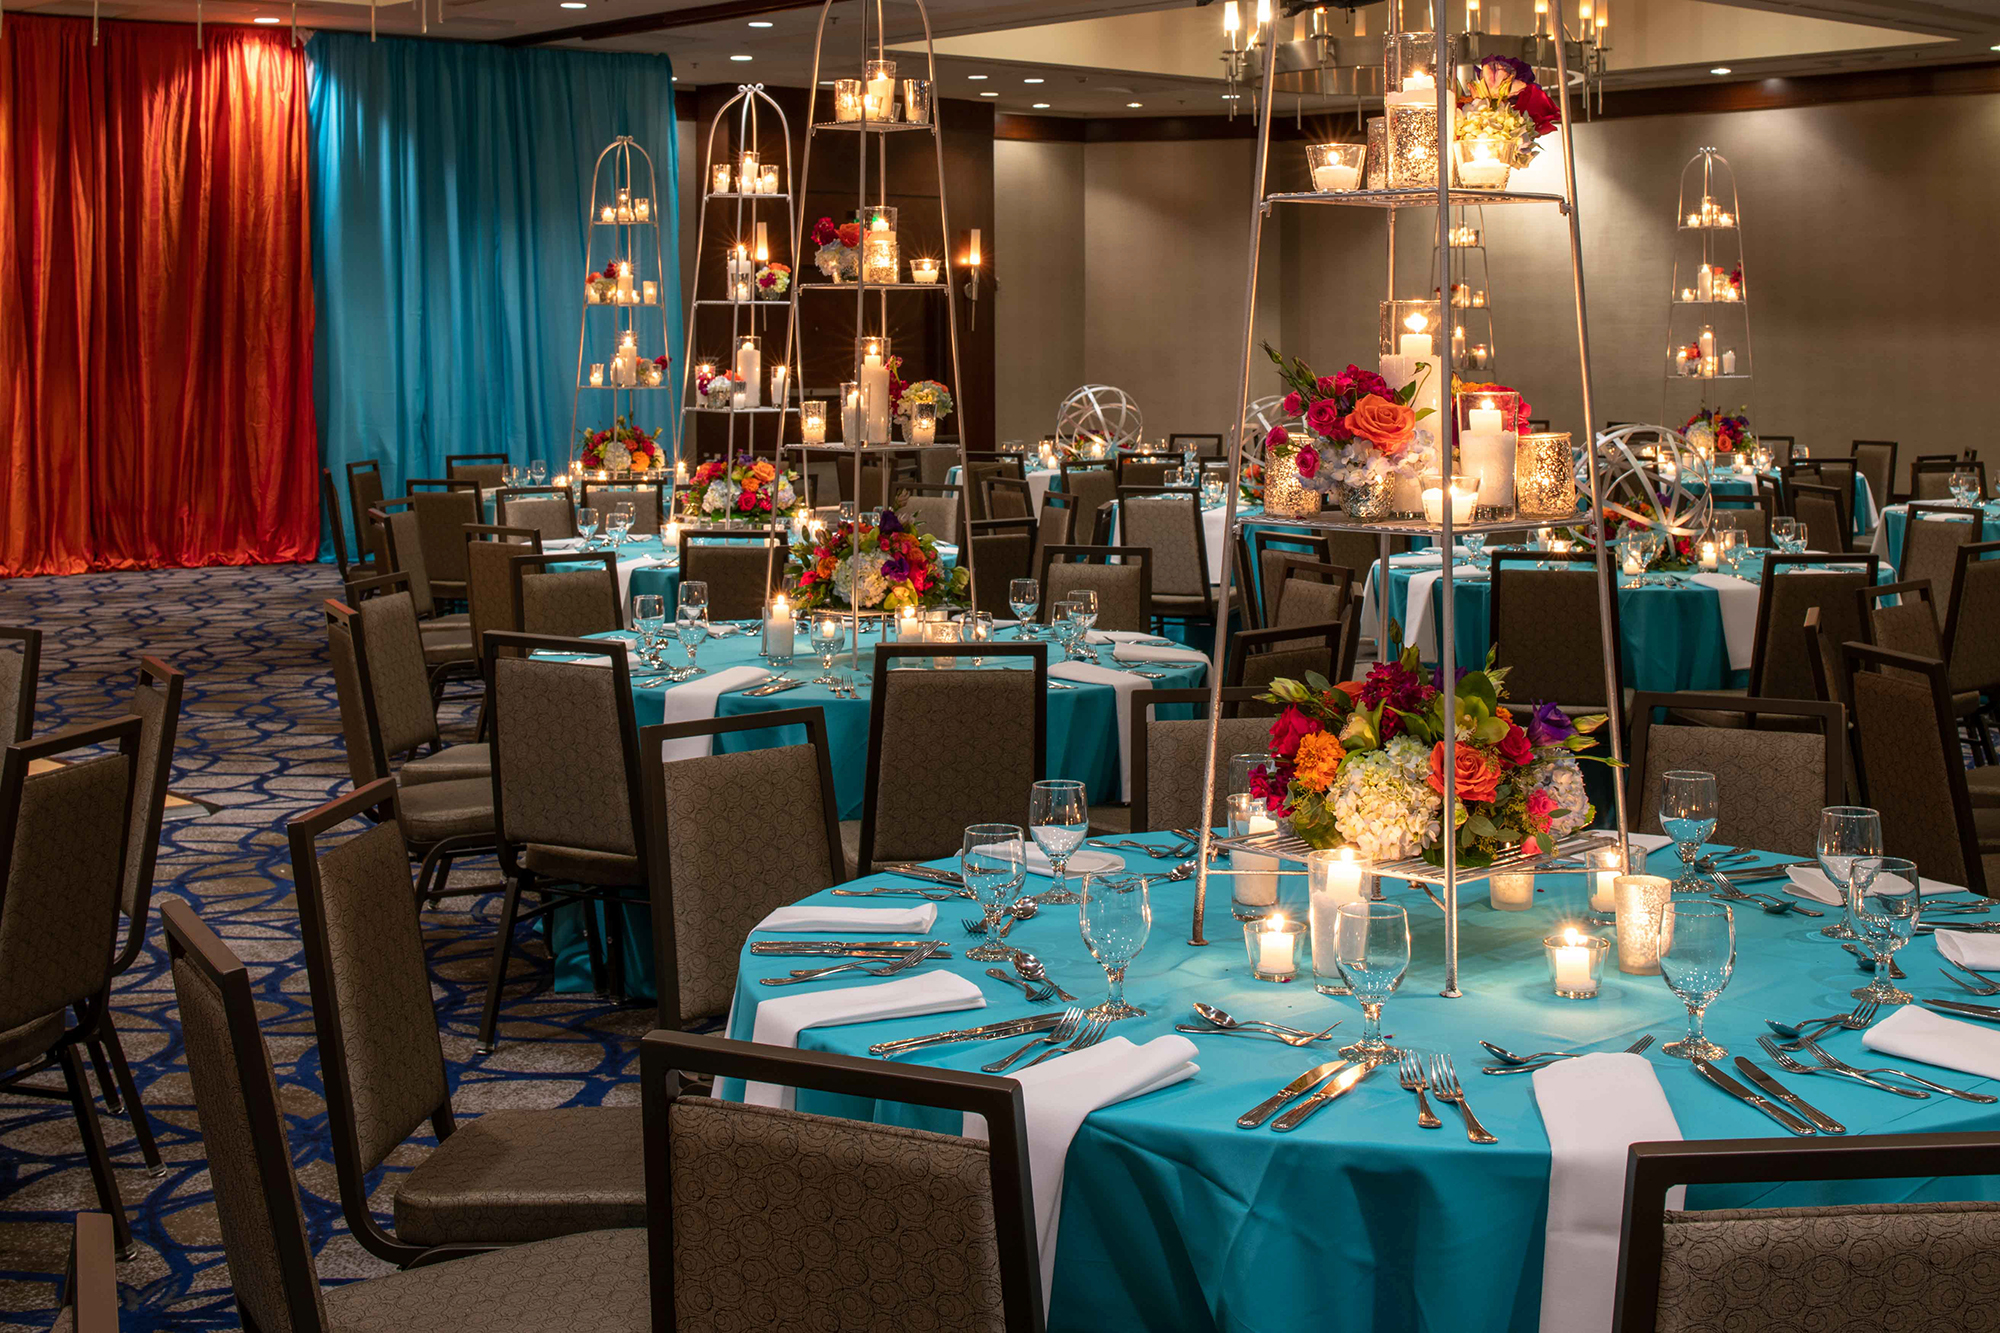 Hilton_Bellevue_Meeting_Grand_Ballroom_Wedding-0009.jpg